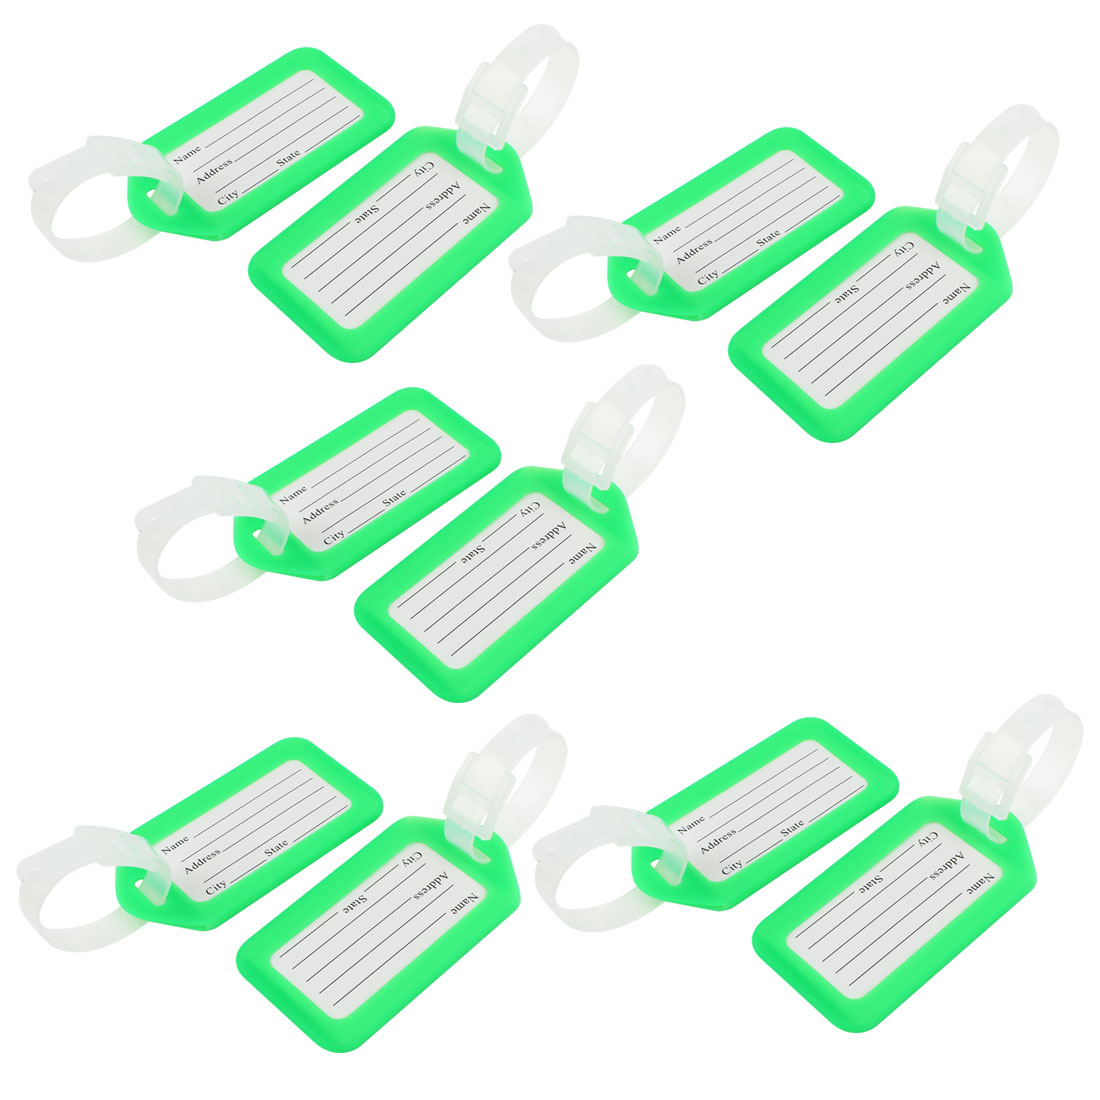 Suitcase Bag Rectangle Design Green White Plastic Name Label Luggage Tag 10 Pcs